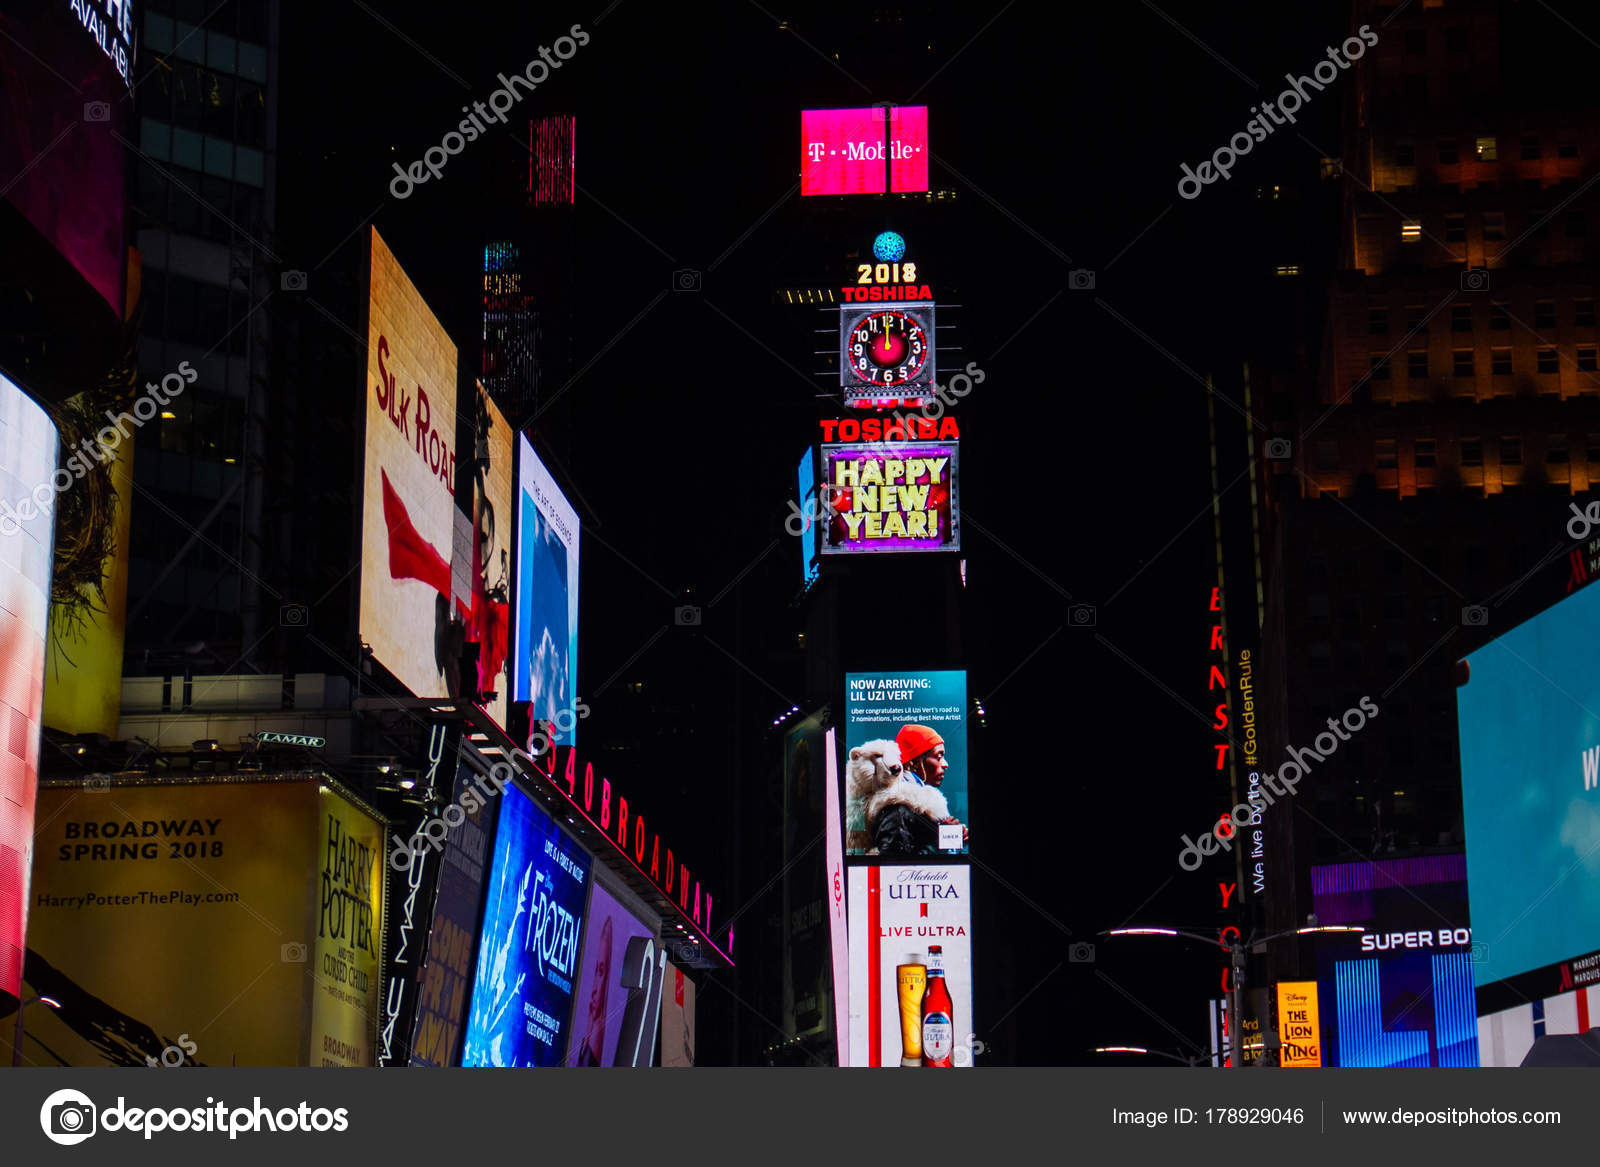 manhattan new york january 1 2018 happy new year billboards on buildings at times square in nighttime photo by spinel_s